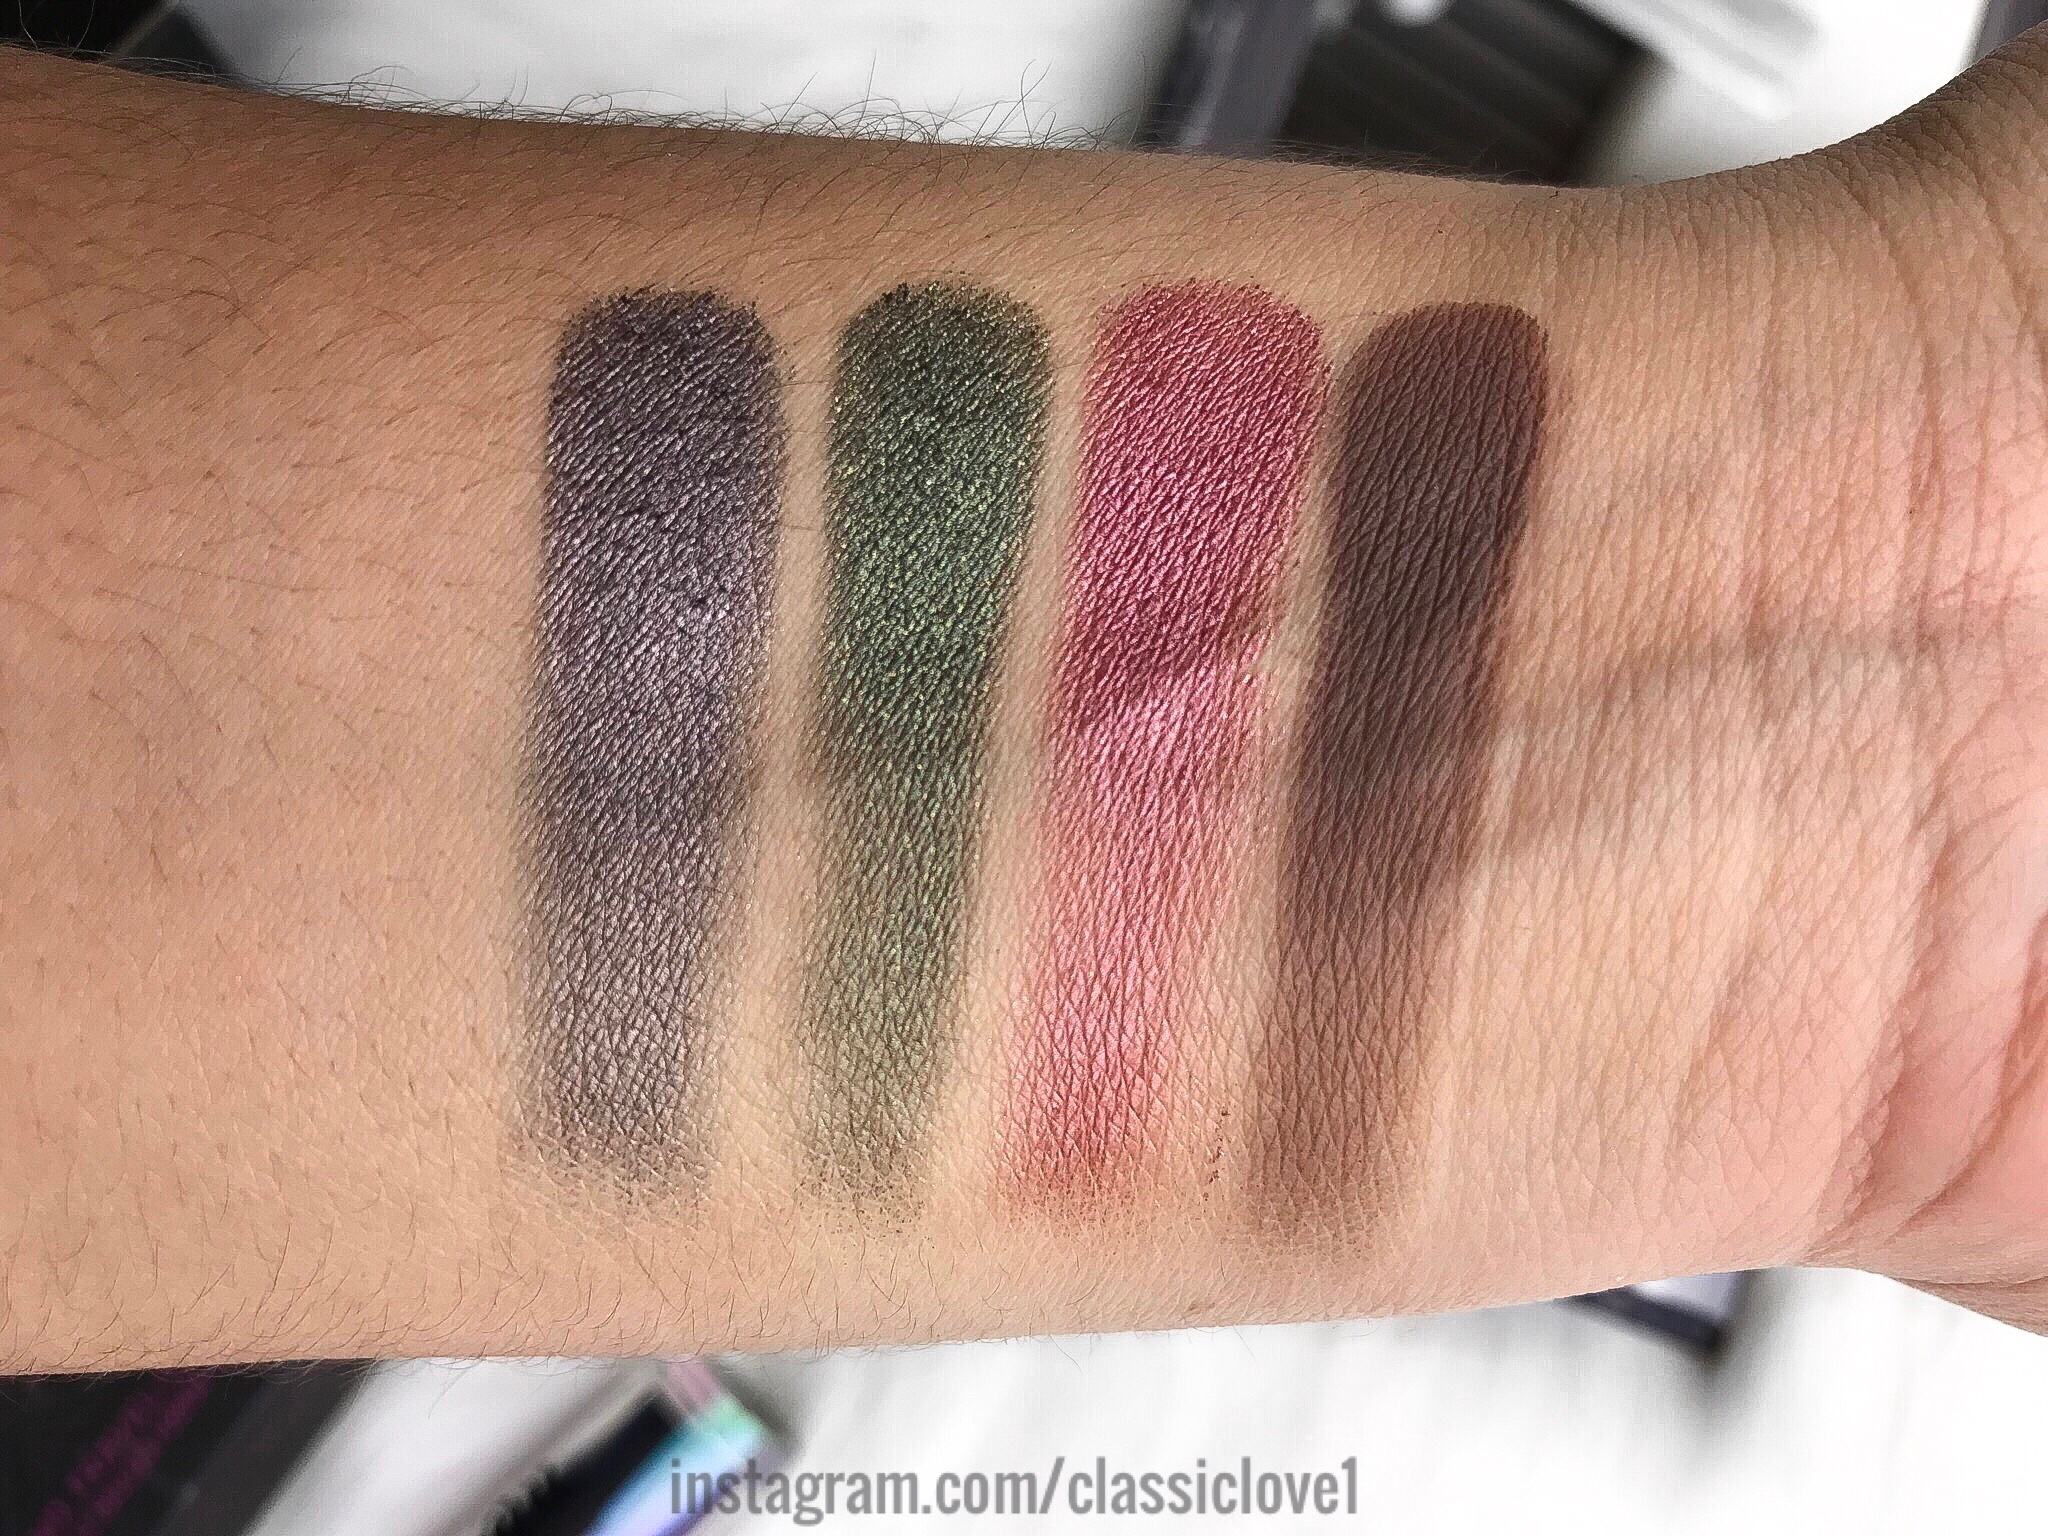 Game Of Thrones Eyeshadow Palette by Urban Decay #10